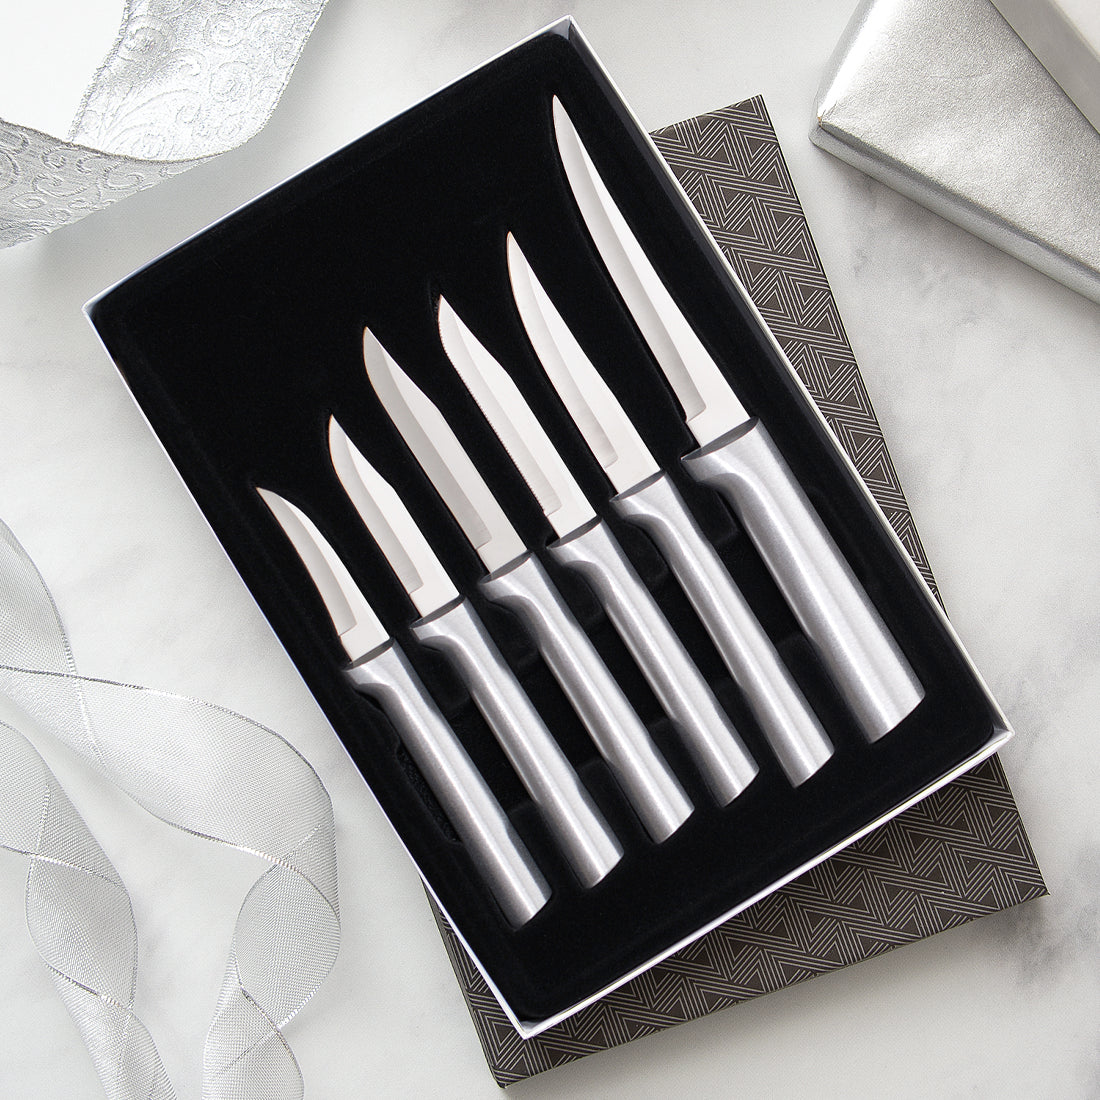 Rada Cutlery All Star Paring Gift Set with silver handles.